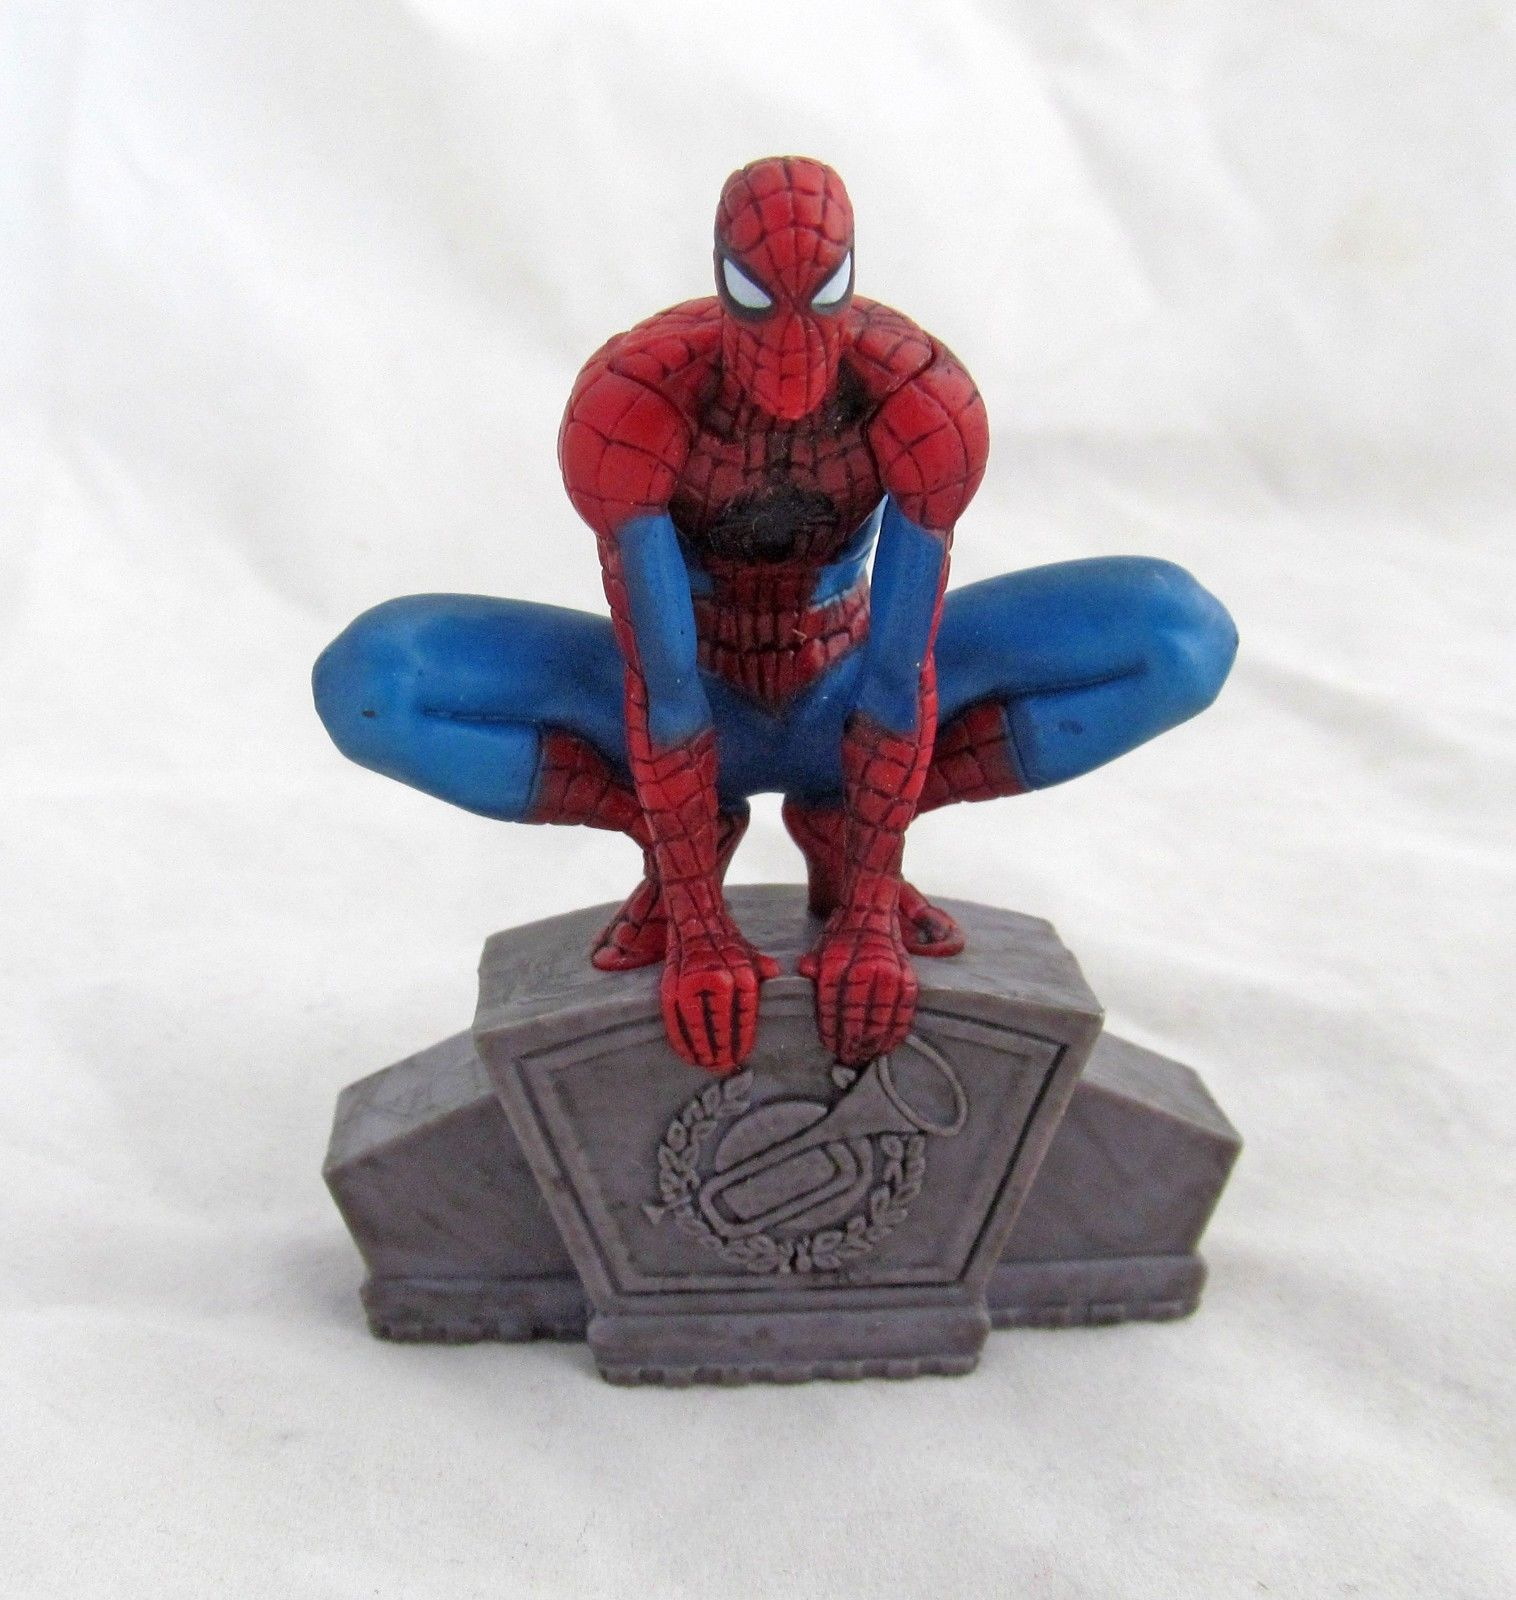 Spiderman Cake Toppers Shop Spiderman Cake Toppers Online